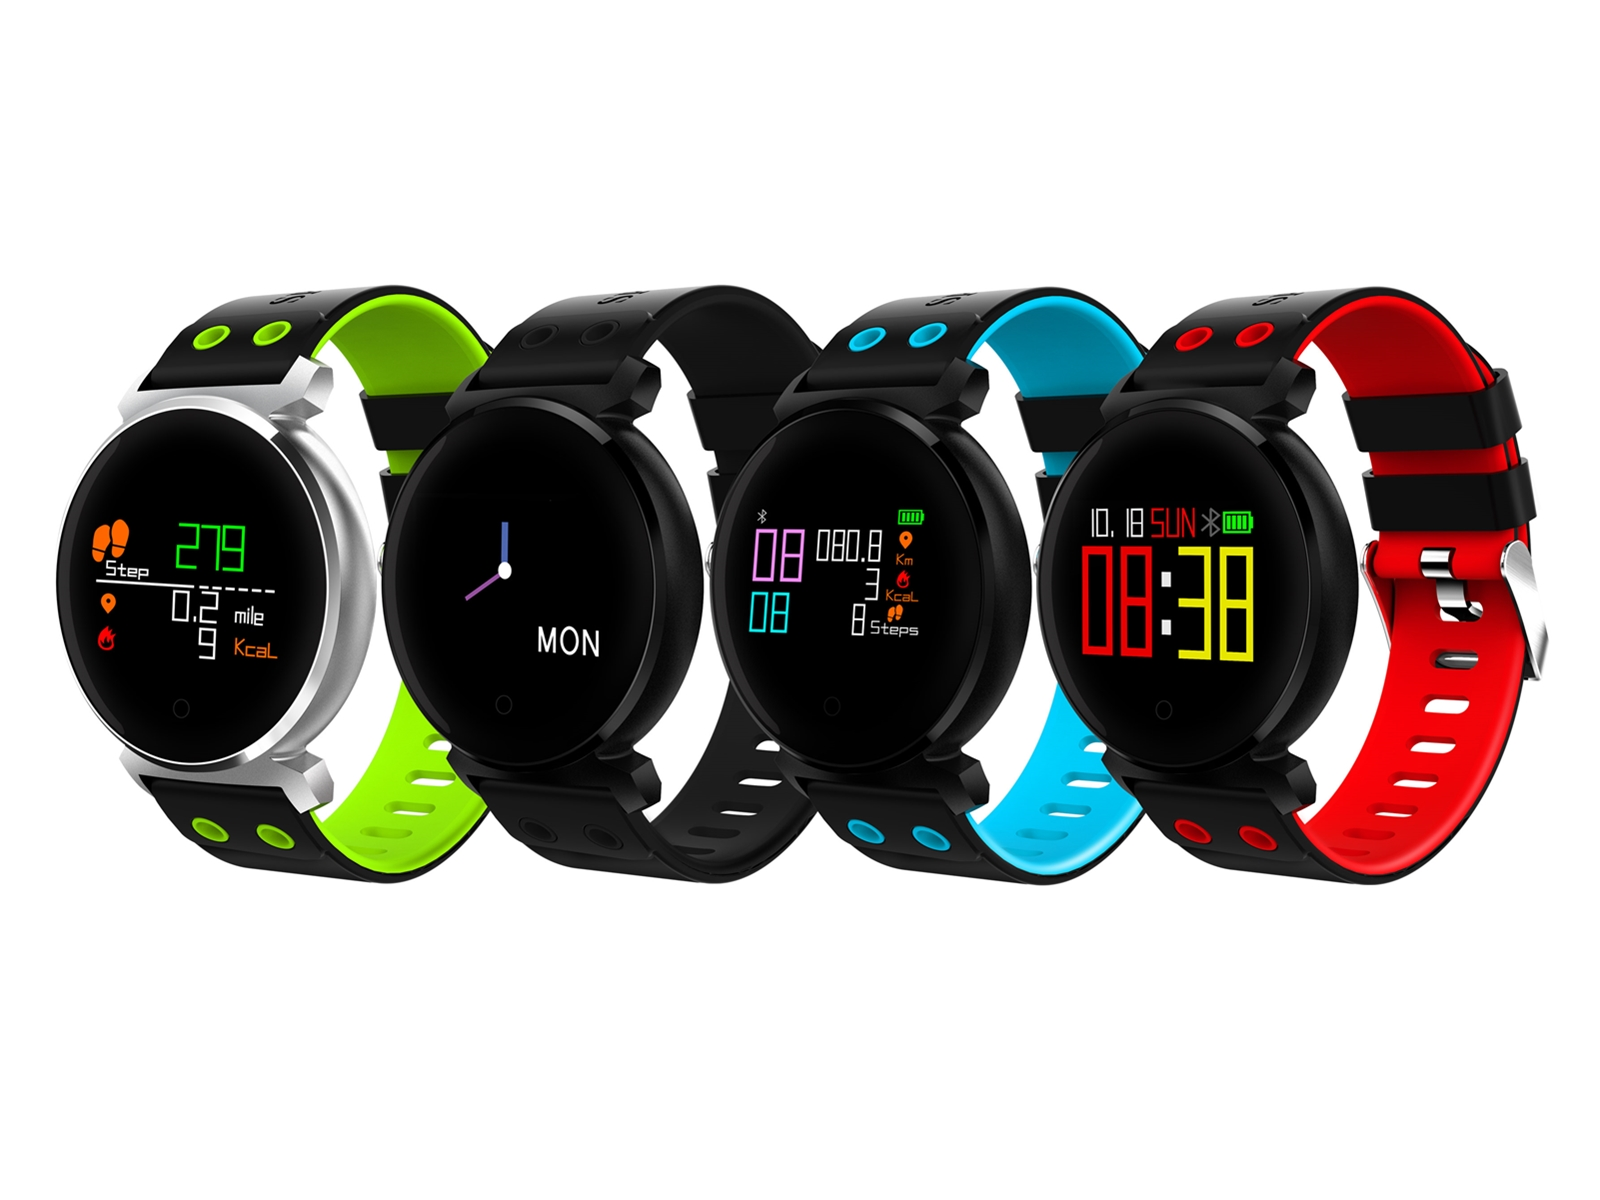 K2 smart watch,IP68 waterproof,heart arate&blood pressure&blood oxygen